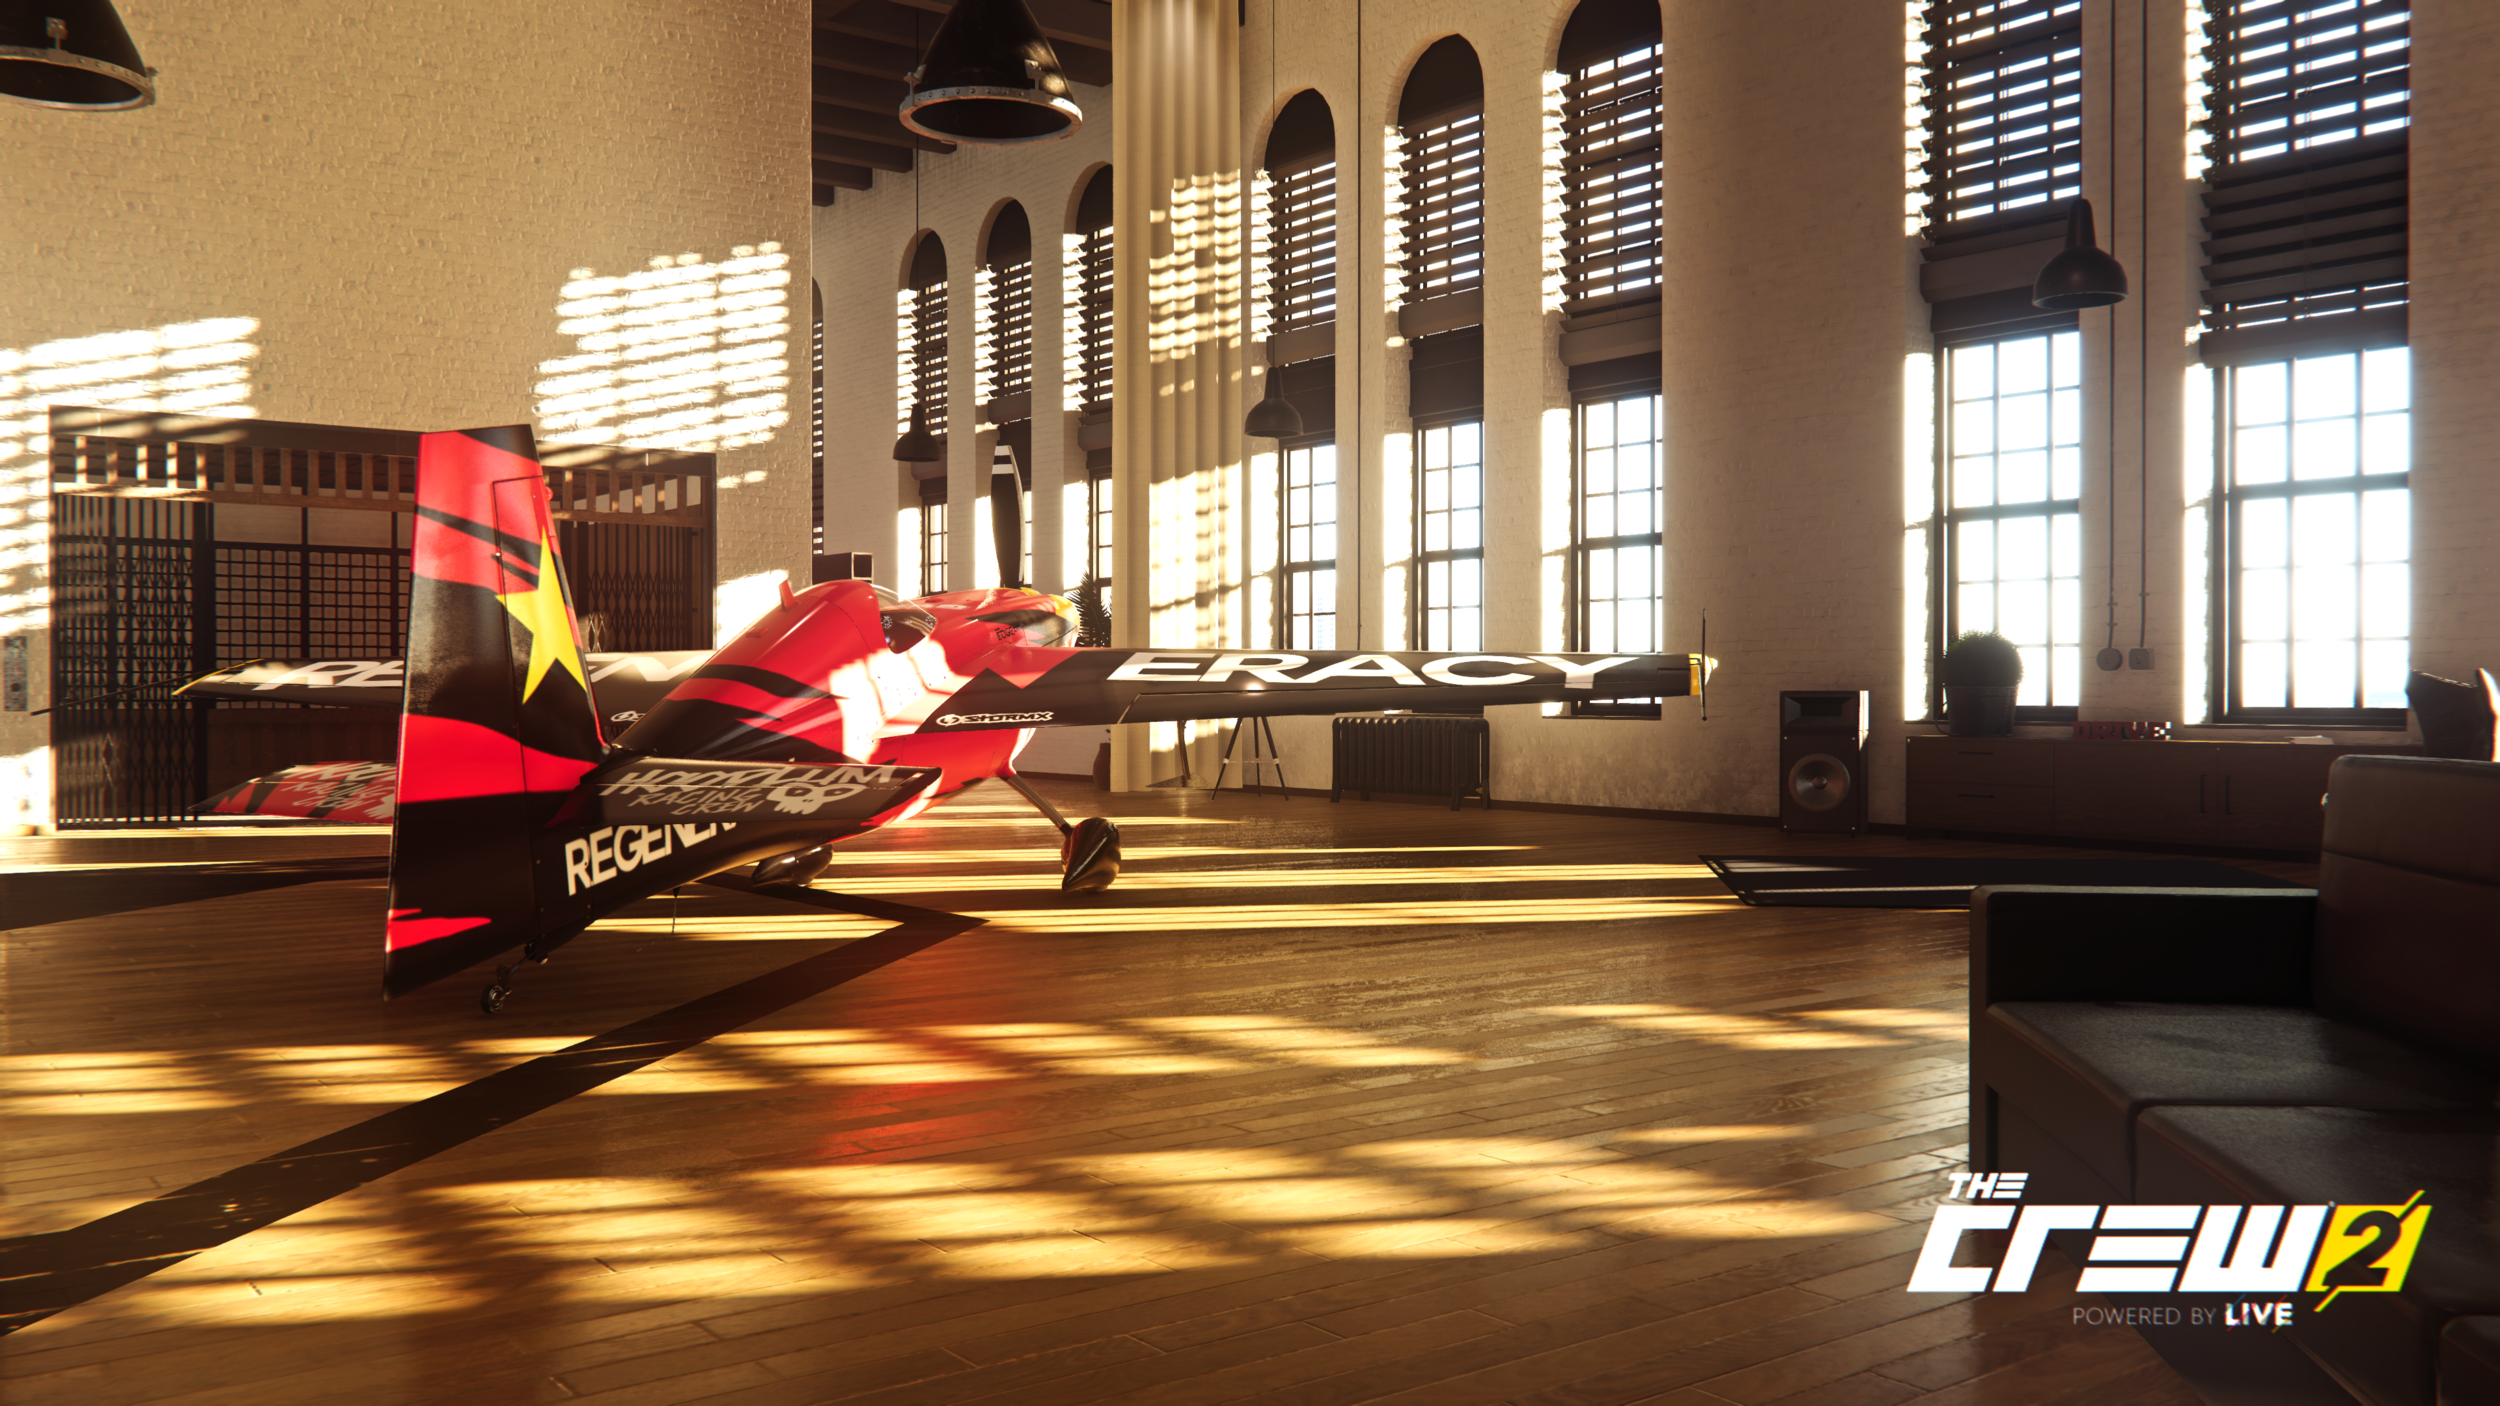 TheCrew2_2019-04-11_20-14-19.png